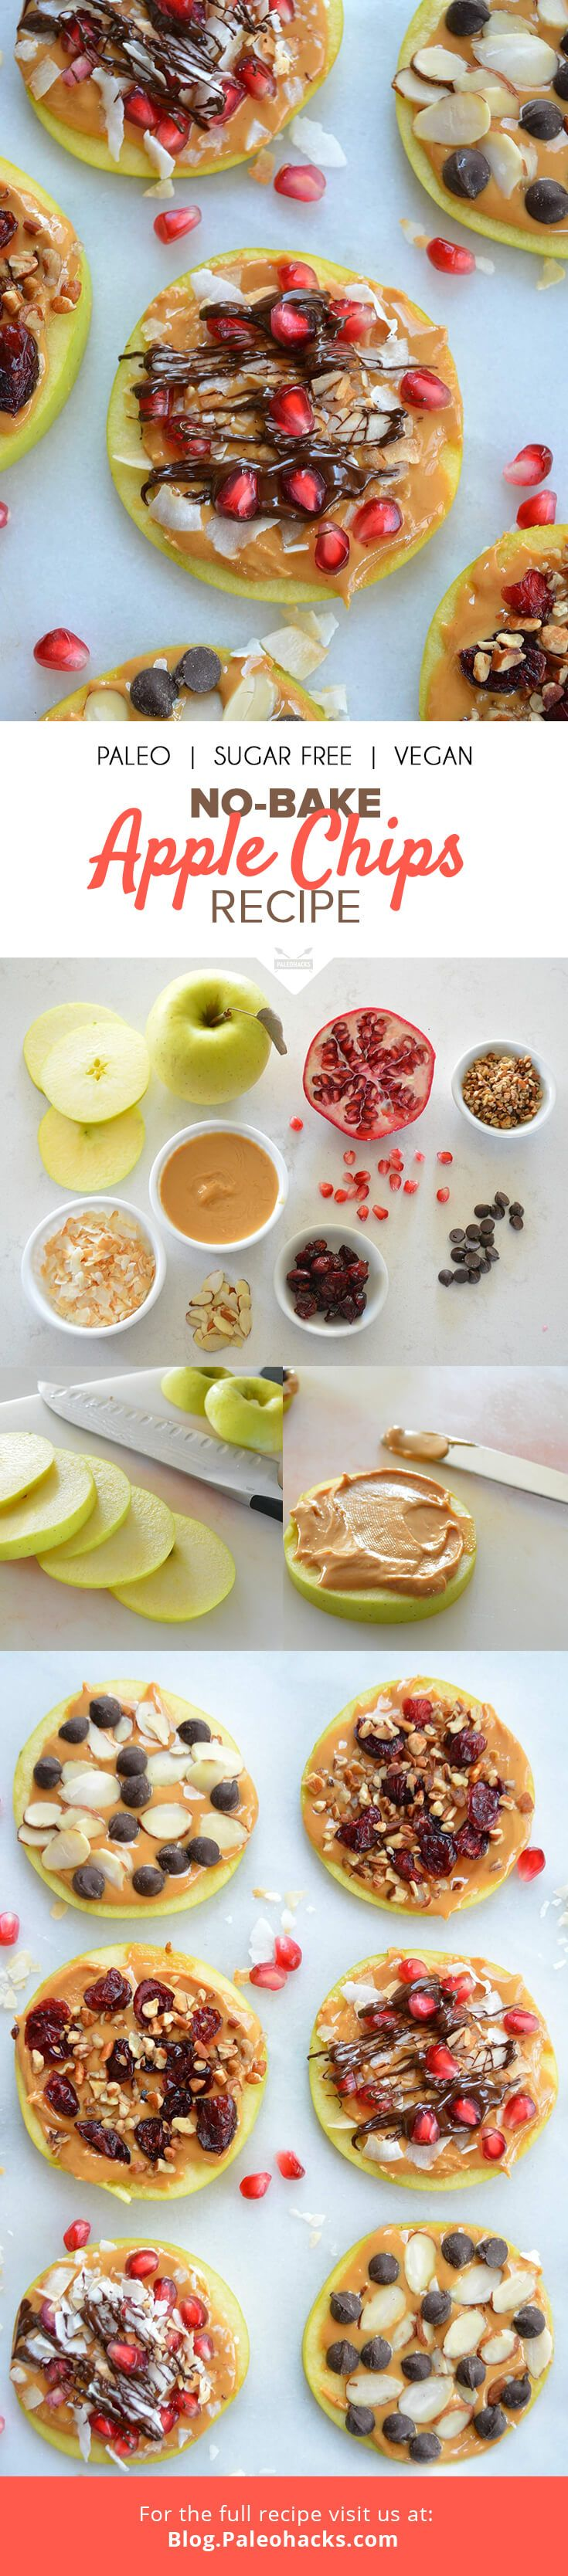 Apple slices get smeared with almond butter and sprinkled with chopped nuts and fruit for a snack that satisfies any craving. These apple chips taste decadent and are packed with fiber and antioxidants. For the full recipe, visit us here: http://paleo.co/applechipsrcp